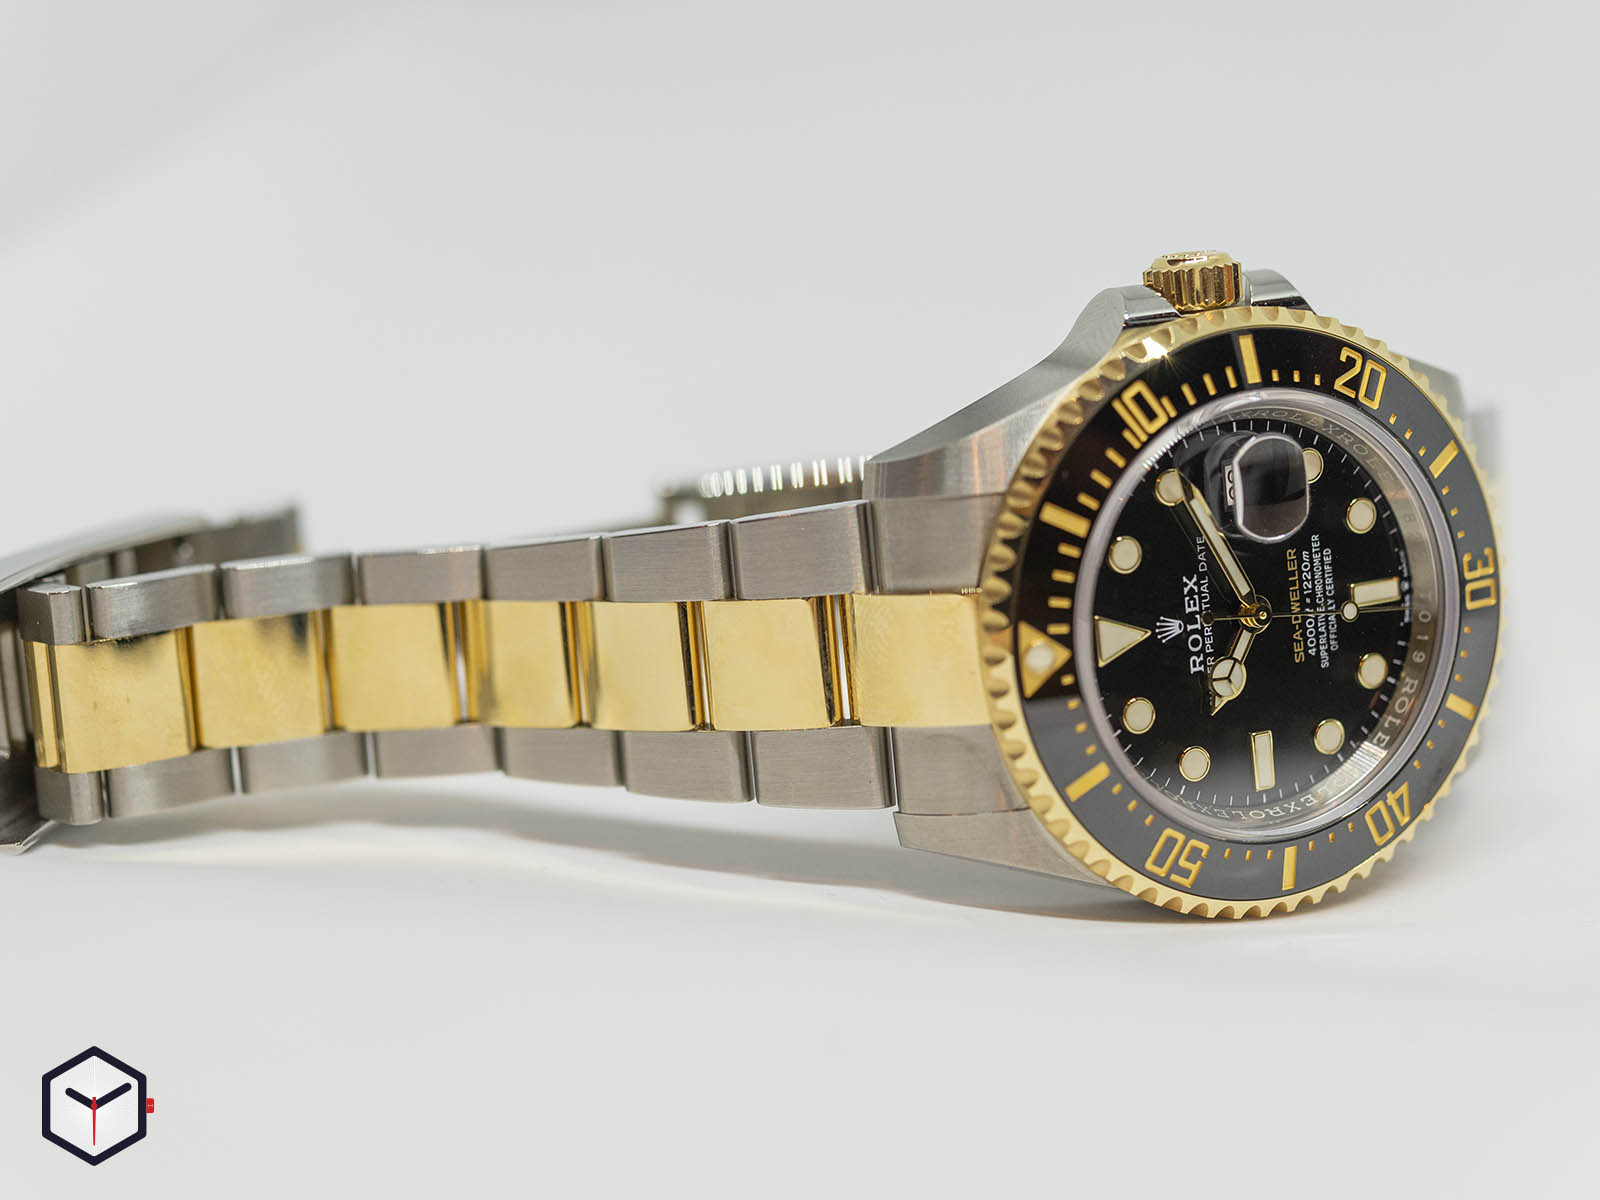 126603-rolex-sea-dweller-two-tone-baselworld-2019-3.jpg